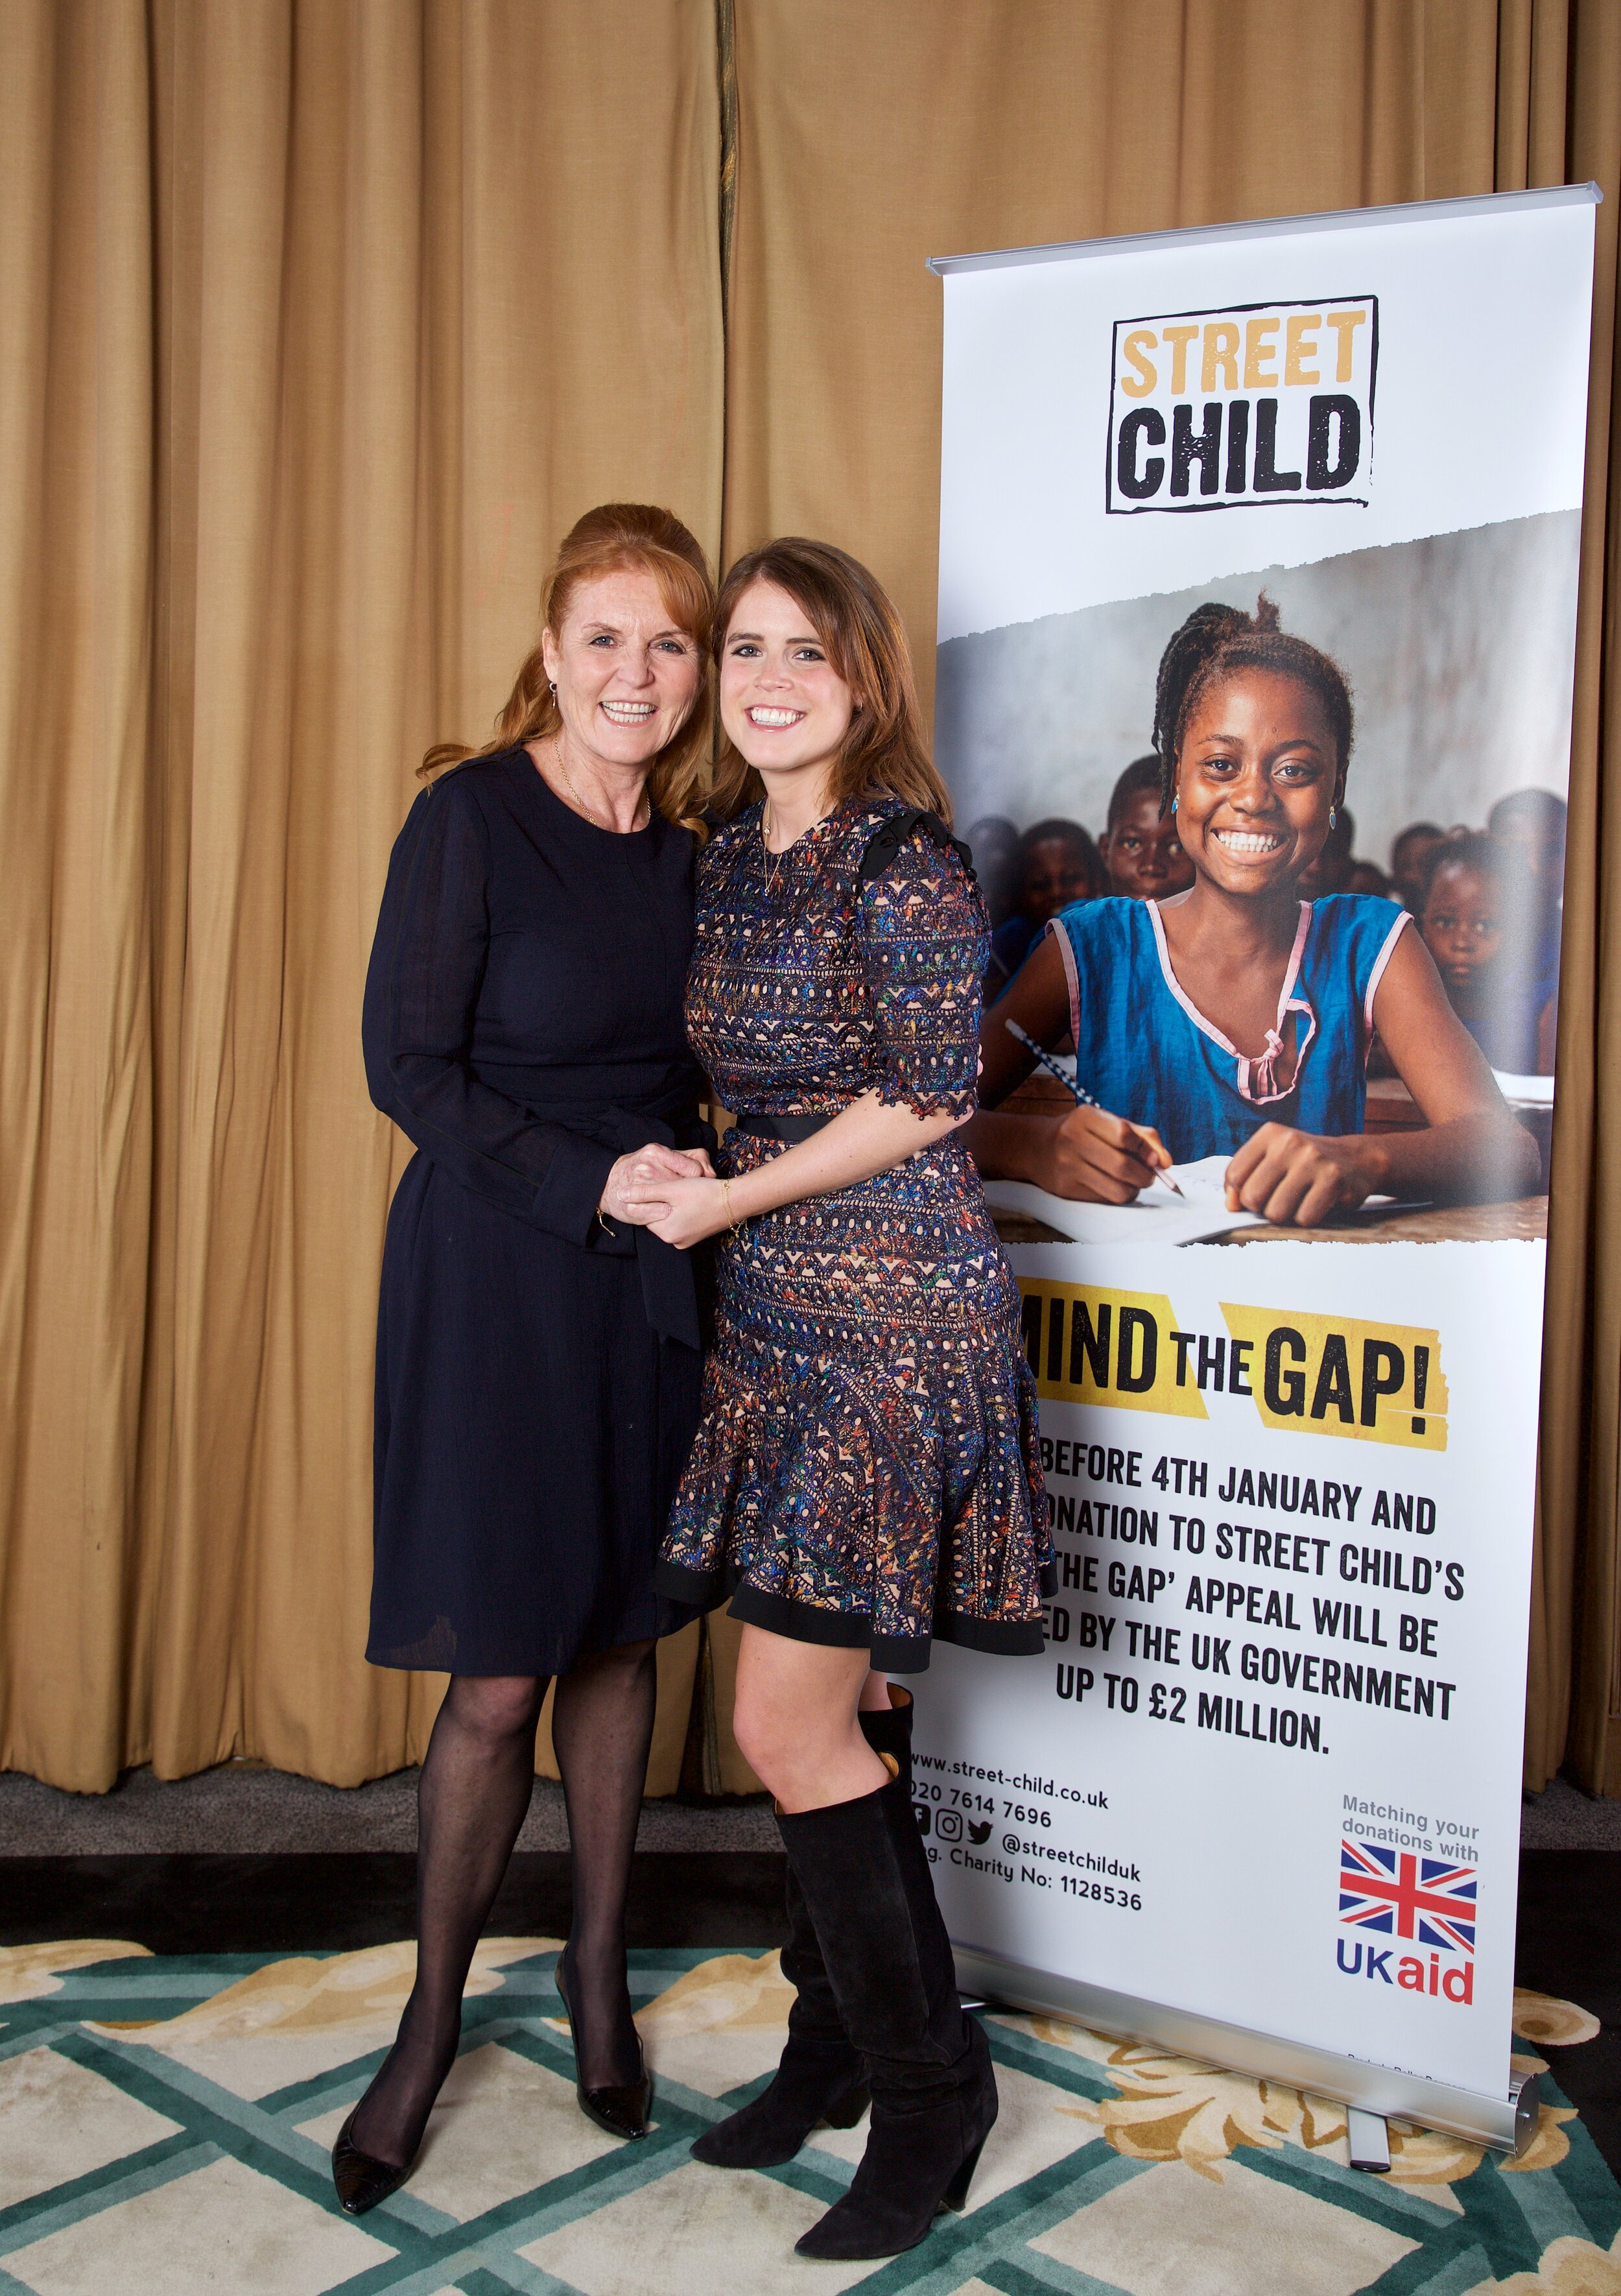 Street Child Founder Patron, Sarah, Duchess of York attended the event with her youngest daughter, HRH Princess Eugenie, and chaired the panel discussion.